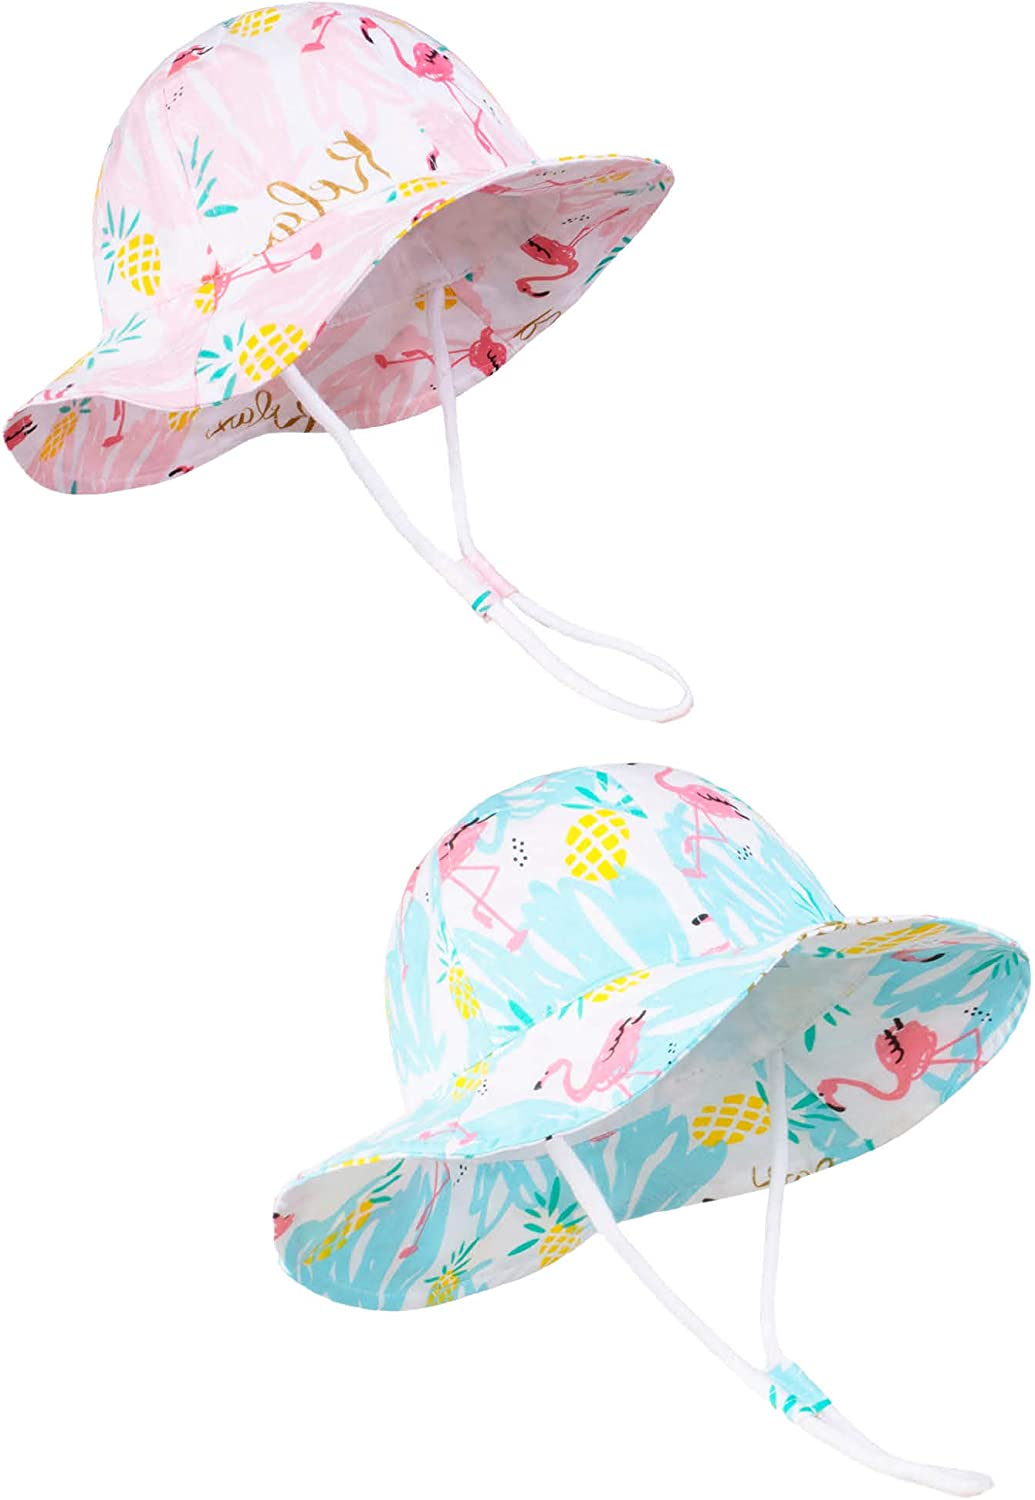 Juenier Toddler Summer Beach Play Hat Adjustable Wide Brim Bucket Hat with Chin Strap for Kids Girls Baby(Pink Flamingos+Blue Flamingos, L: 2T-4T (52cm /20.5